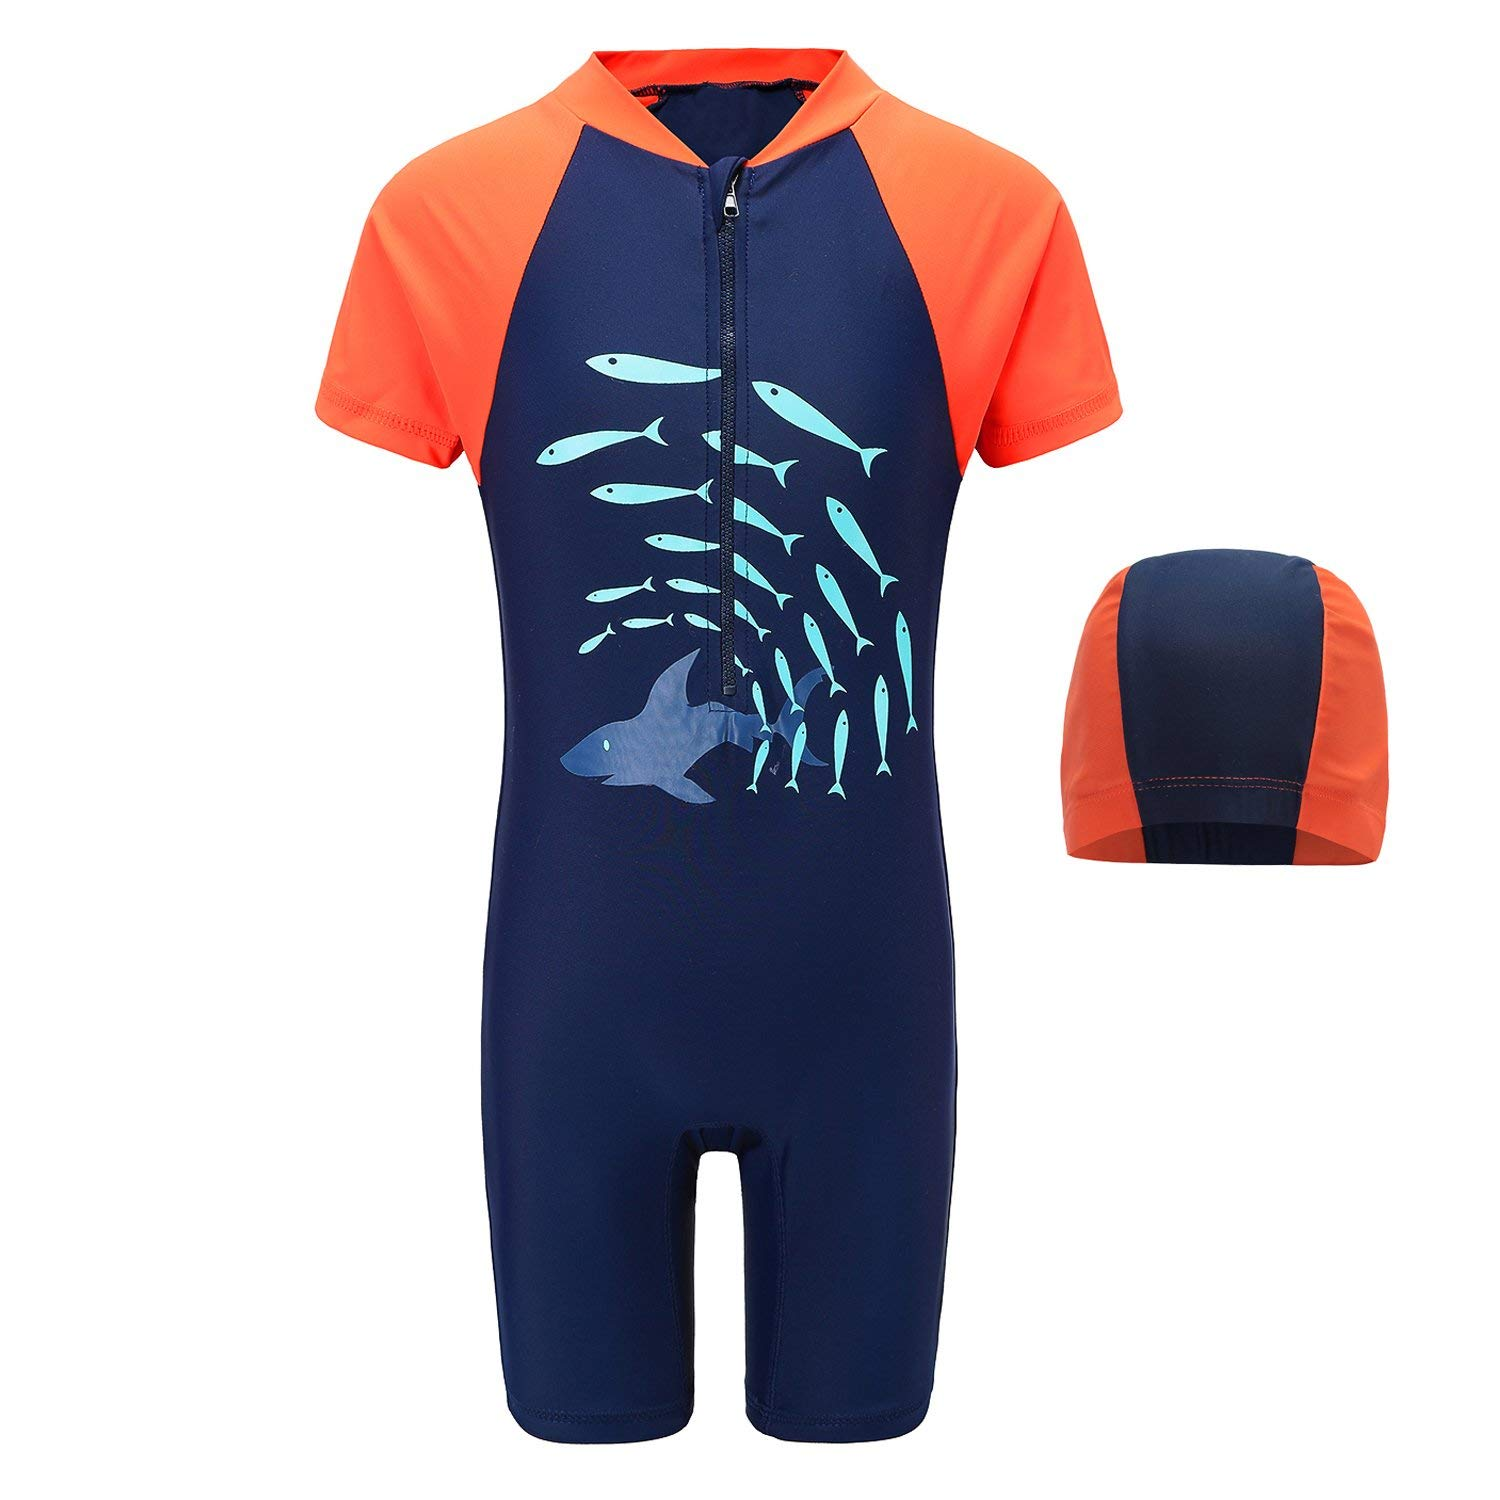 27632208adc Boys One Piece Swimsuits Short Sleeve Rash Guard Shirt Bathing Suits for  Boys product image